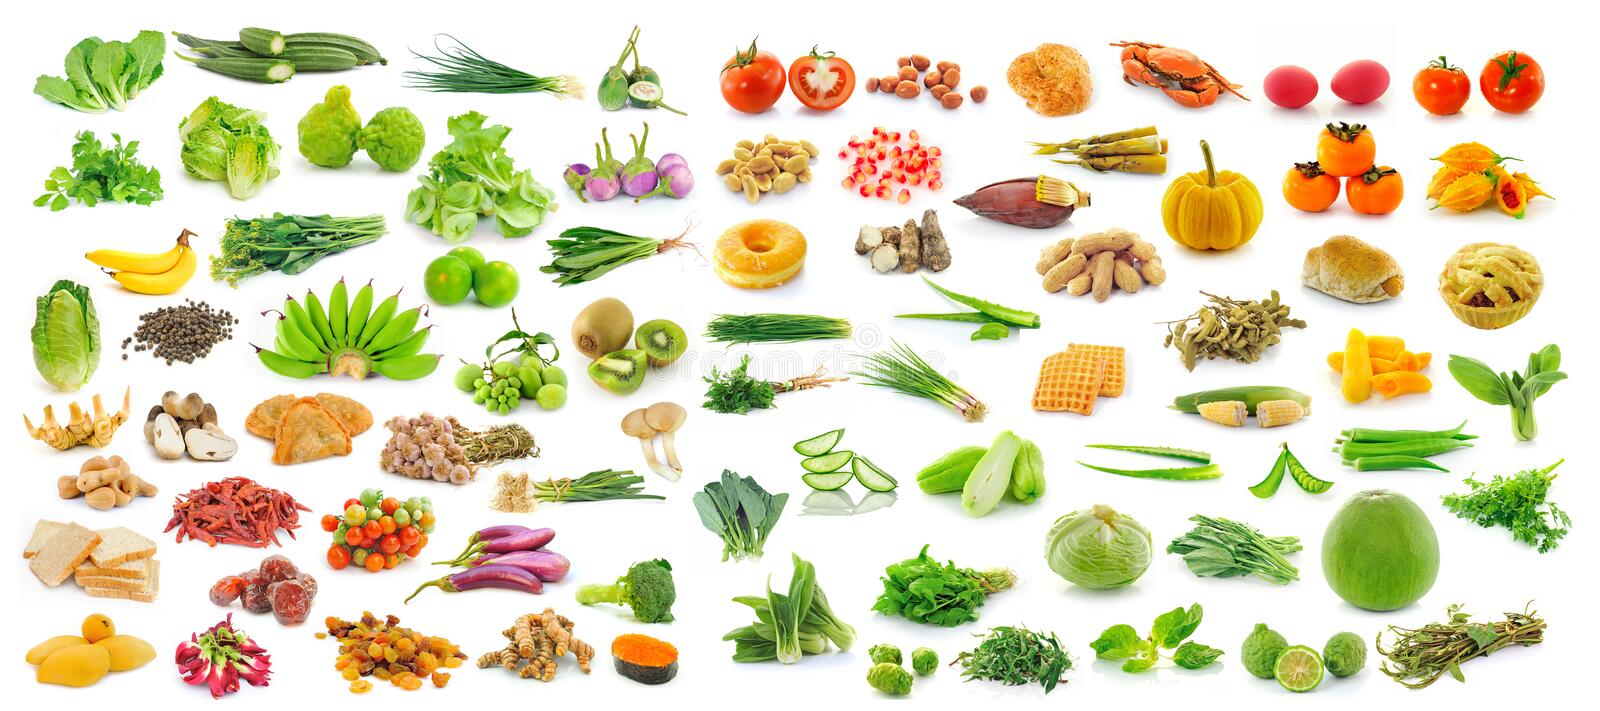 Collection of fruit and Vegetables on white background. Collection of fruit and Vegetables isolated on white background royalty free stock images